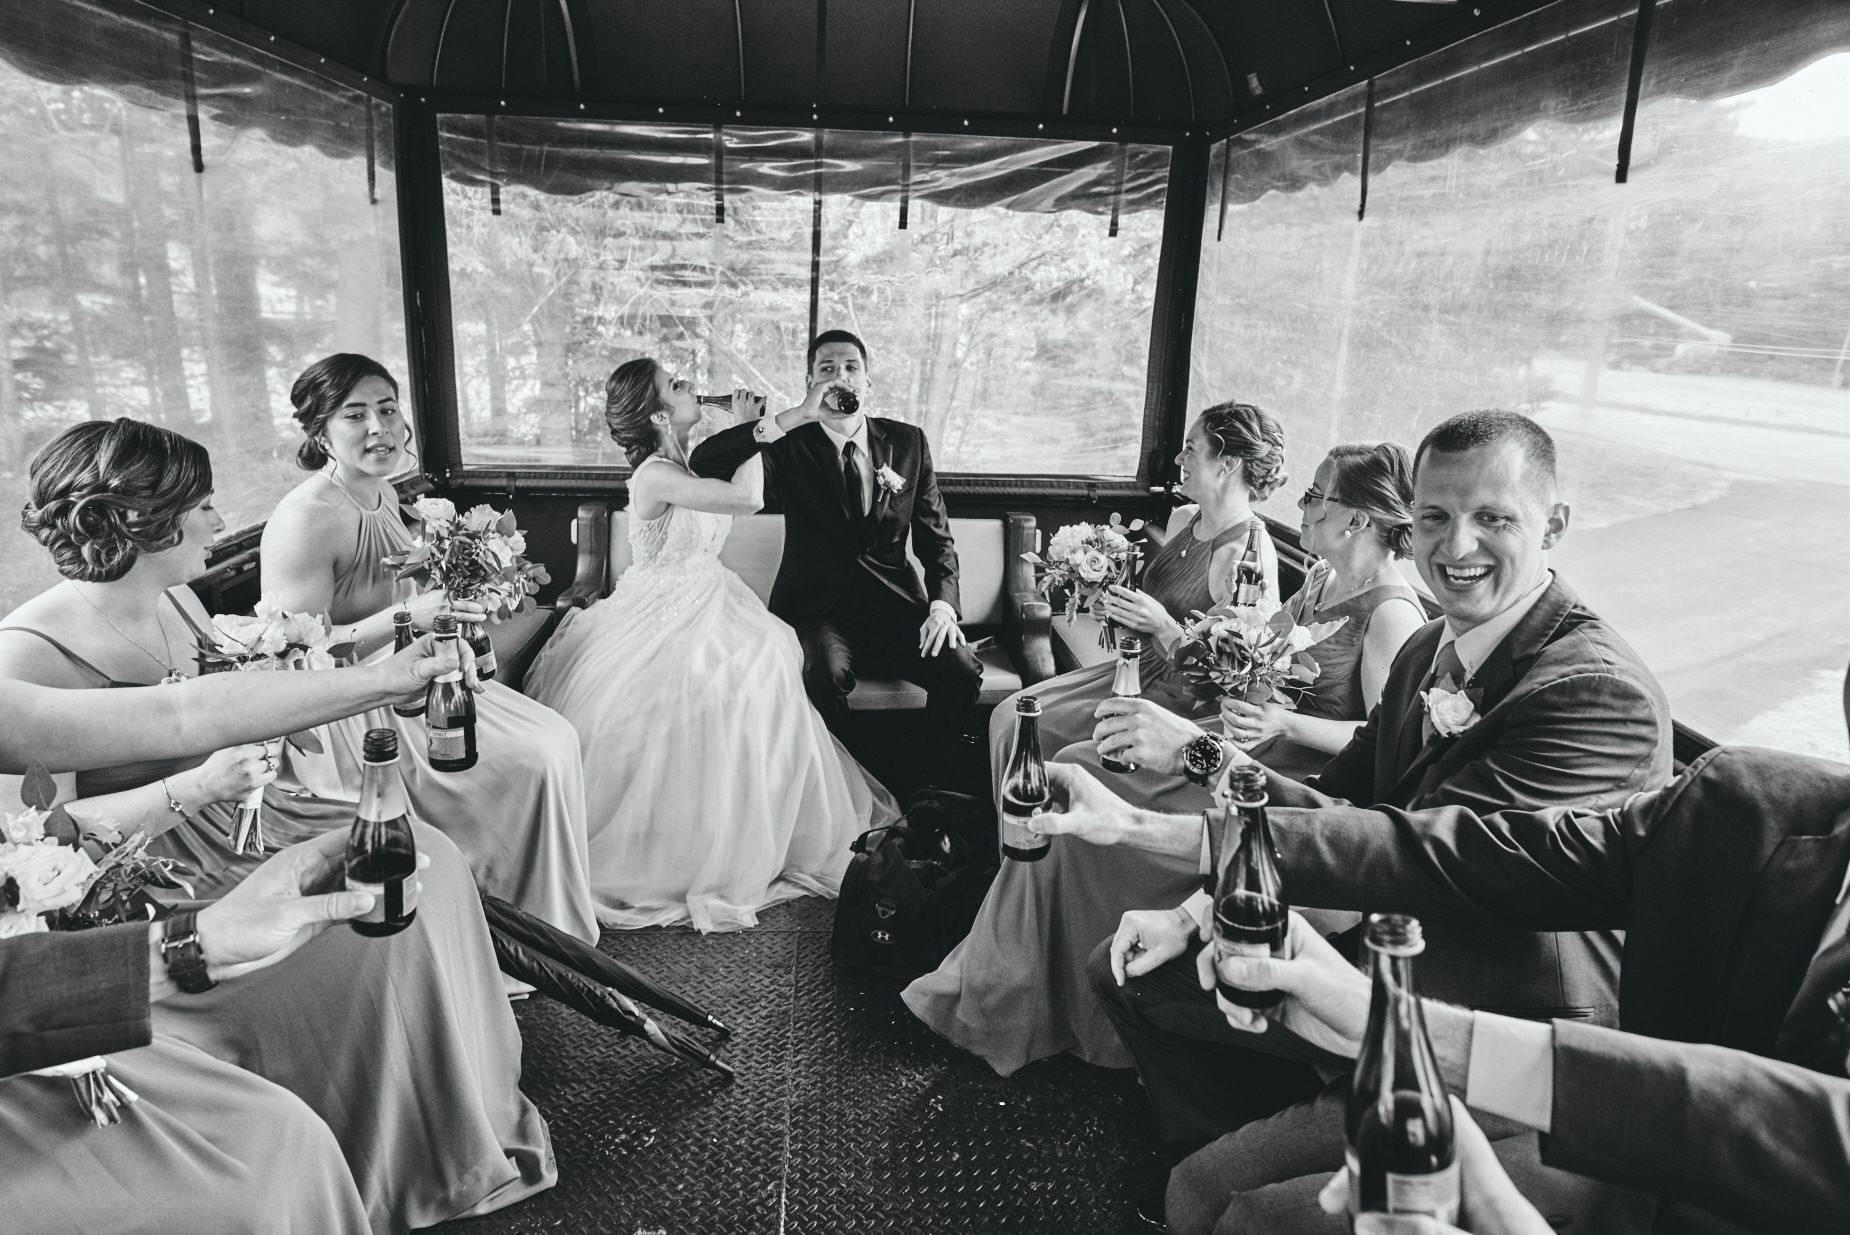 Photography by Cate Bligh - Rainy Day Wedding in The White Mountain National Forest in Waterville Valley, NH